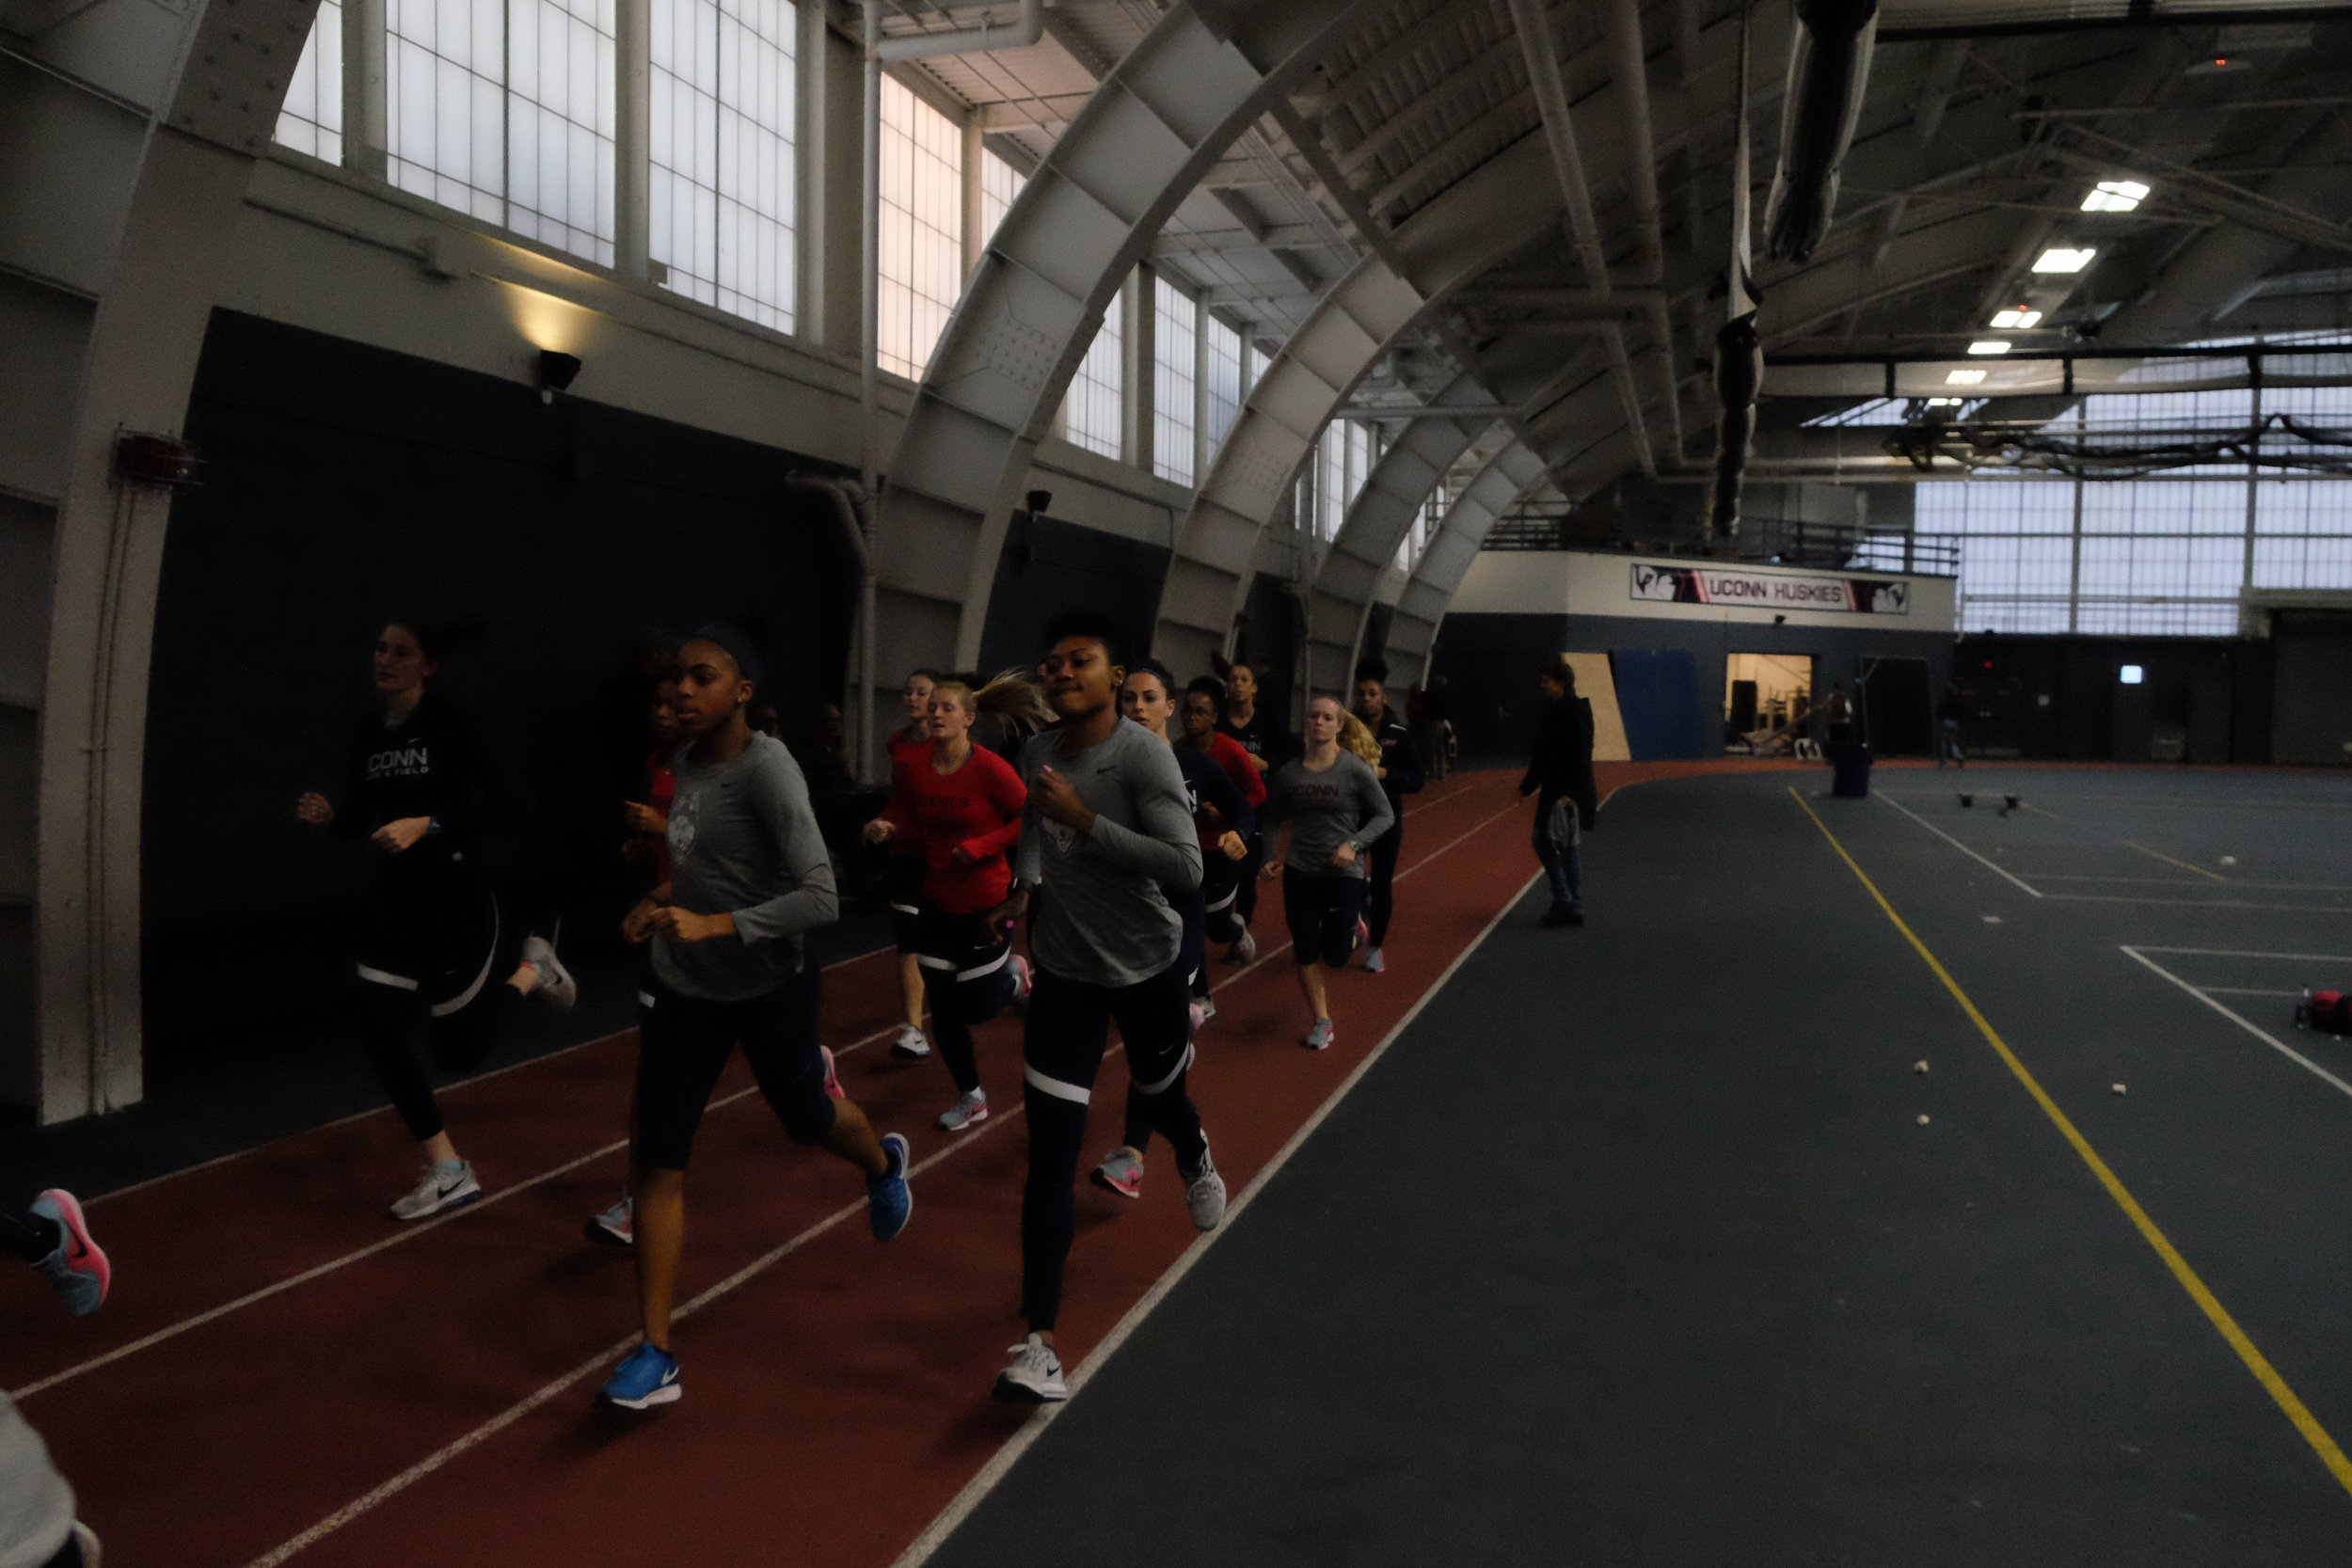 The University of Connecticut held a two day men's track heptatholon Thursday Dec. 7. Several events, like the high jump, 60 meter hurtles, and several others being held on Friday Dec. 8. (Photo by Jon Sammis/The Daily Campus)